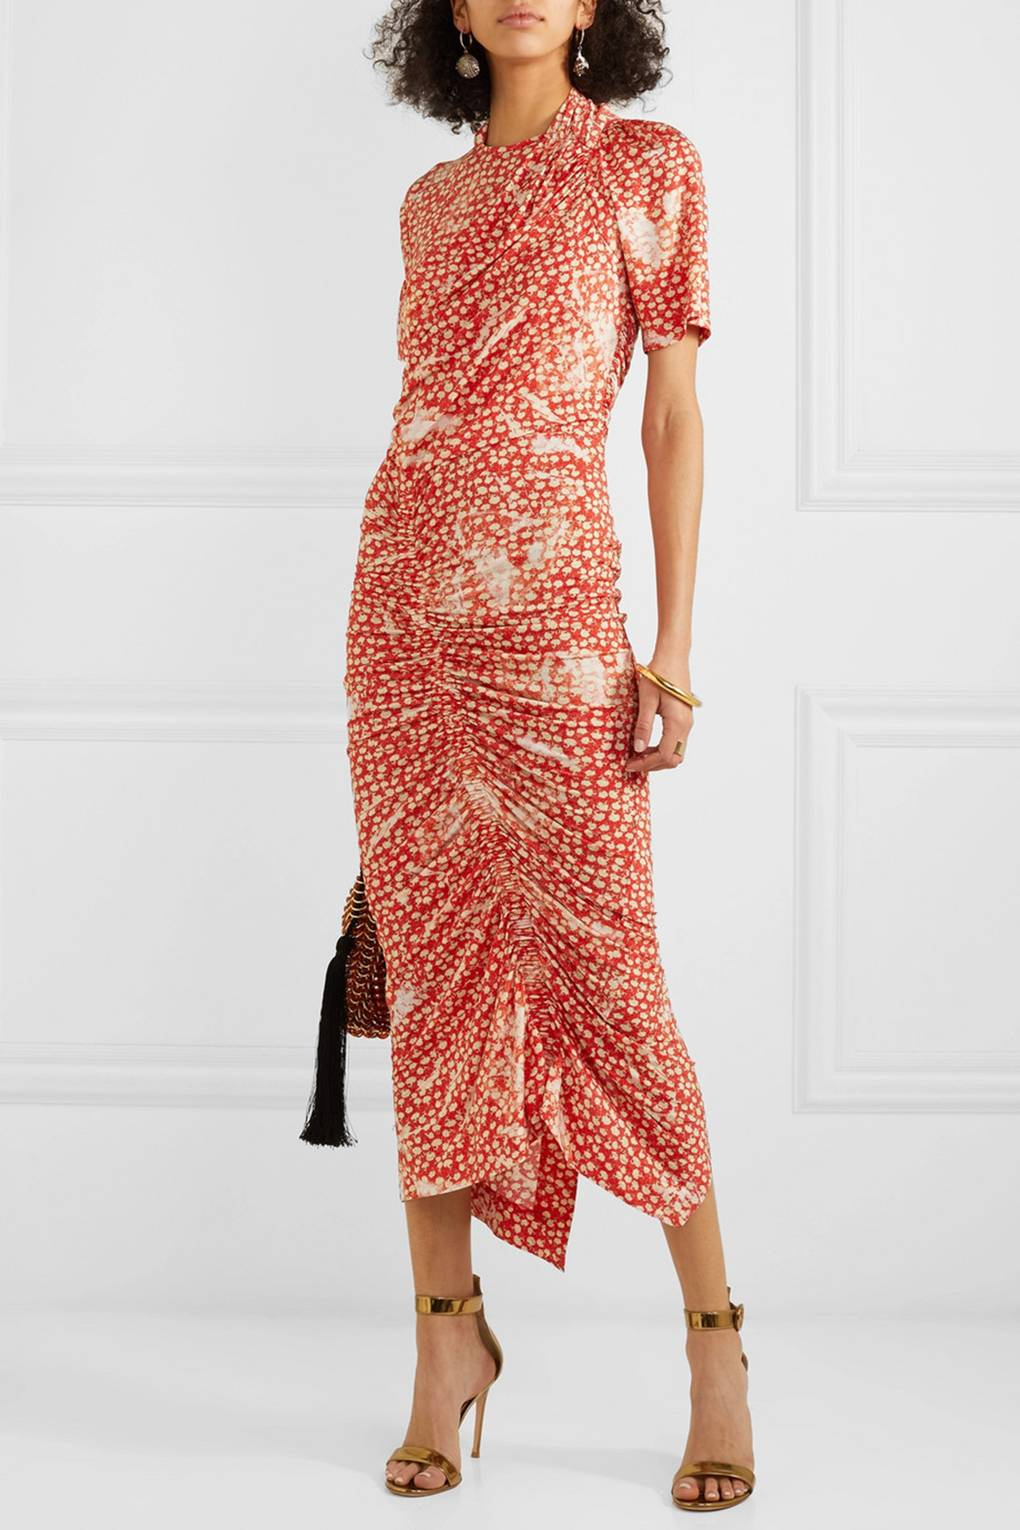 e290bb4f6dc Chic Spring Wedding Guest Dresses - What To Wear To A Wedding In 2019